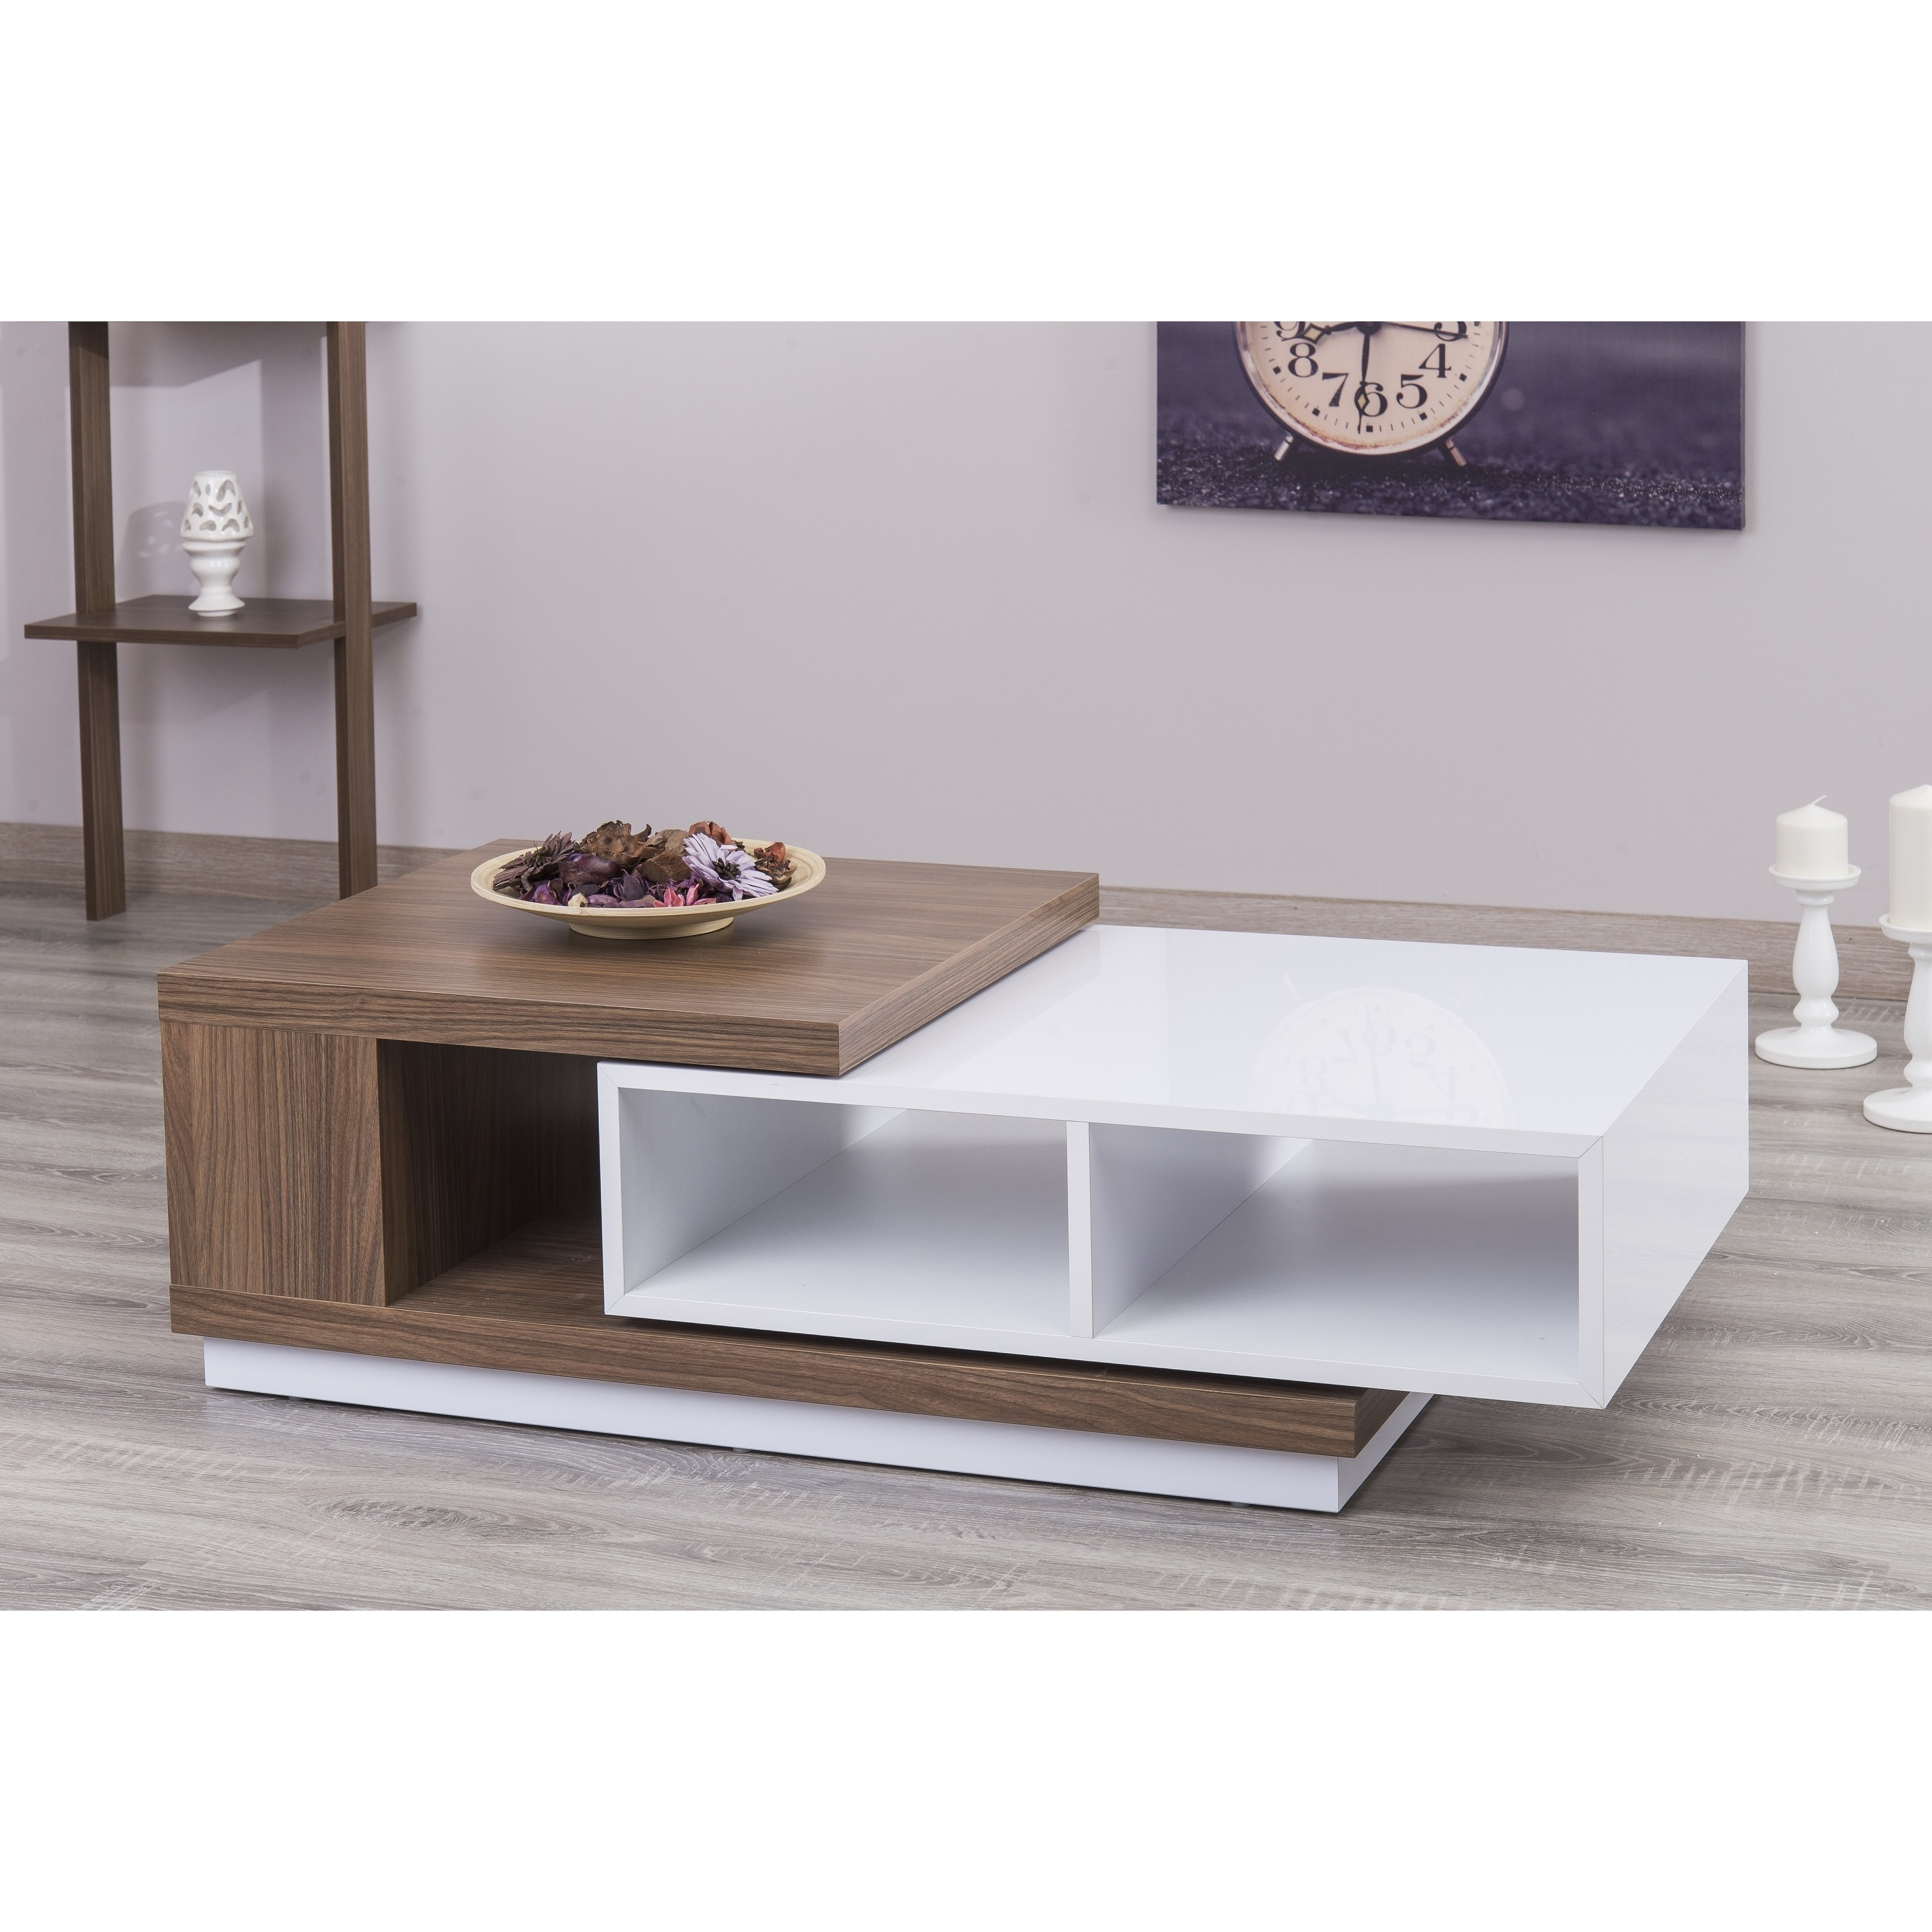 Shop zoom s extendable white lacquer coffee table free shipping today overstock com 18965908